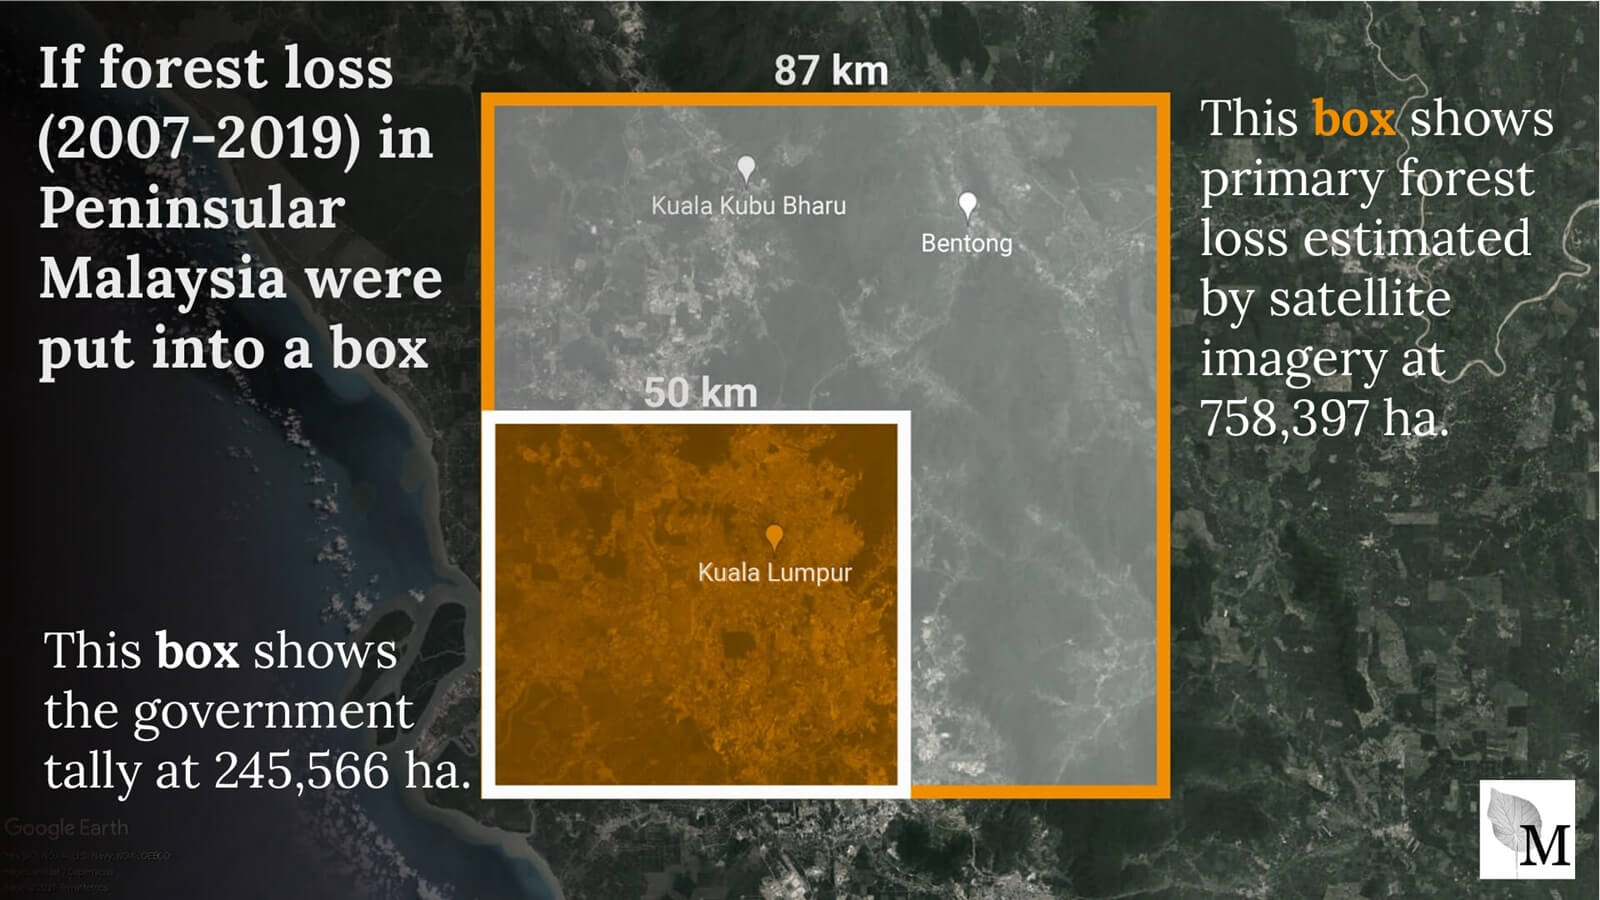 Two boxes showing the comparison of government tall of forest loss in Peninsular Malaysia at 245566 ha against satellite estimates three times higher.